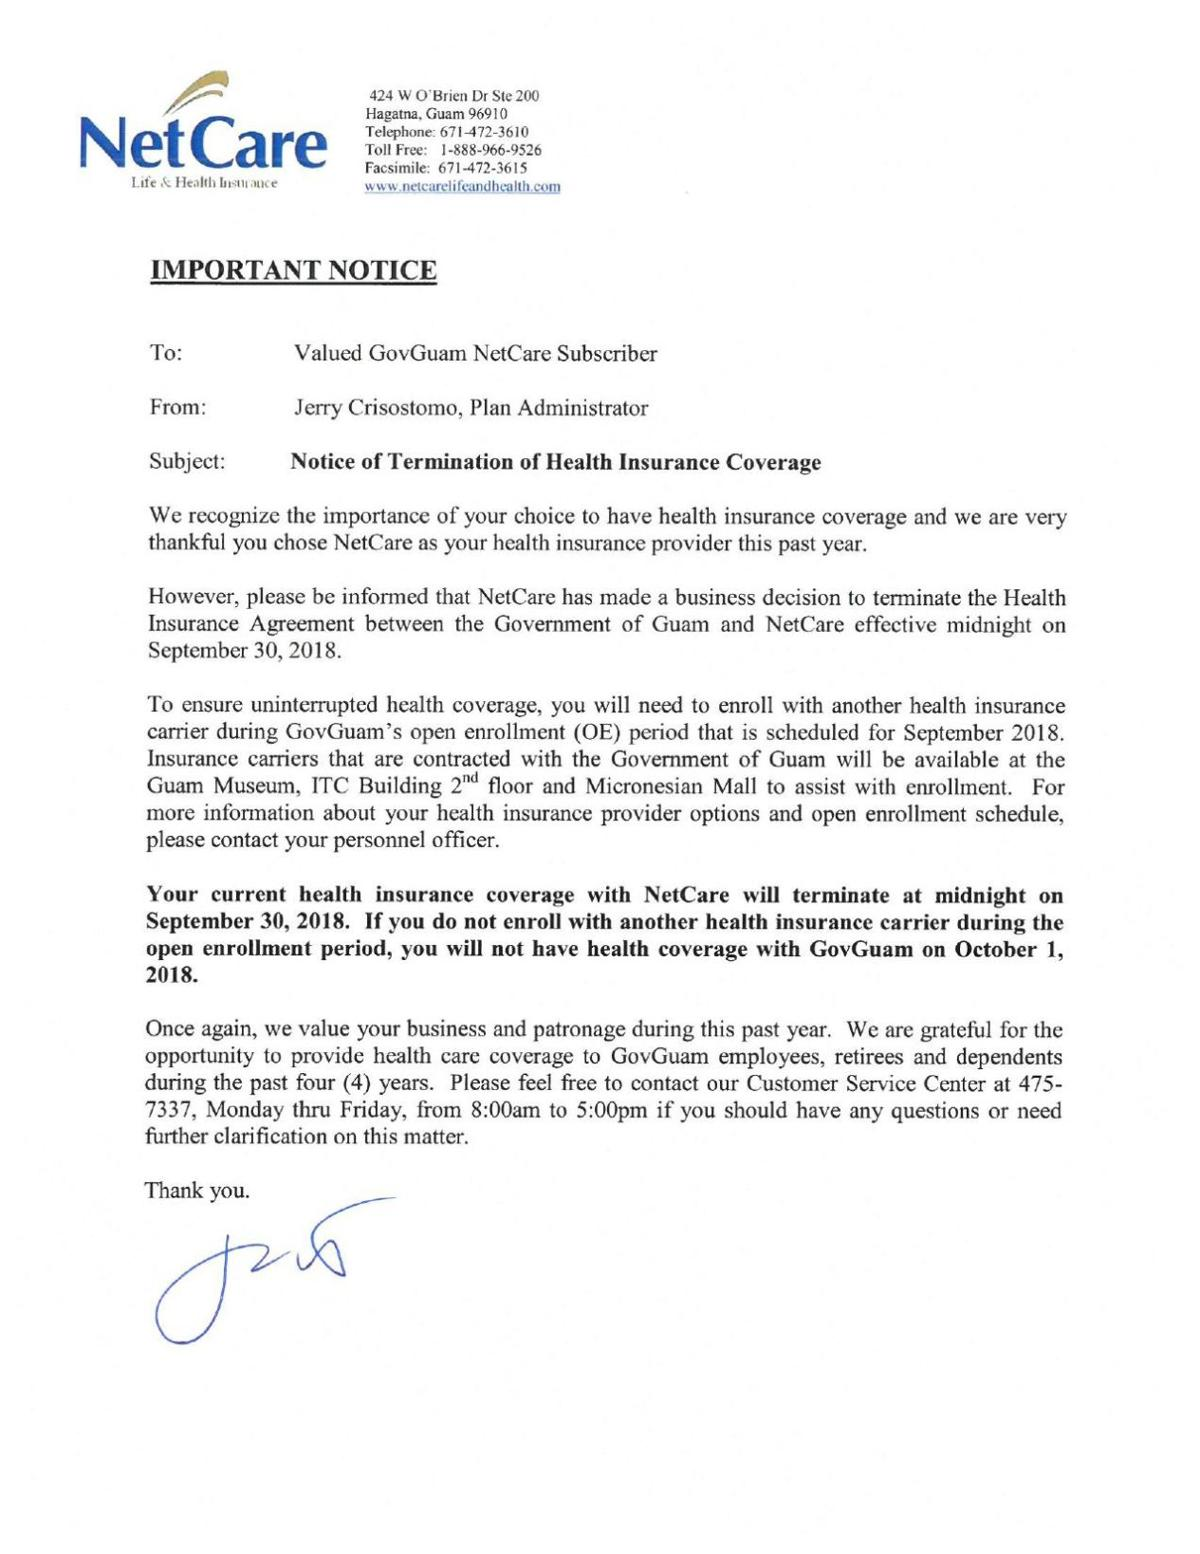 Health Insurance Cancellation Letter from bloximages.newyork1.vip.townnews.com